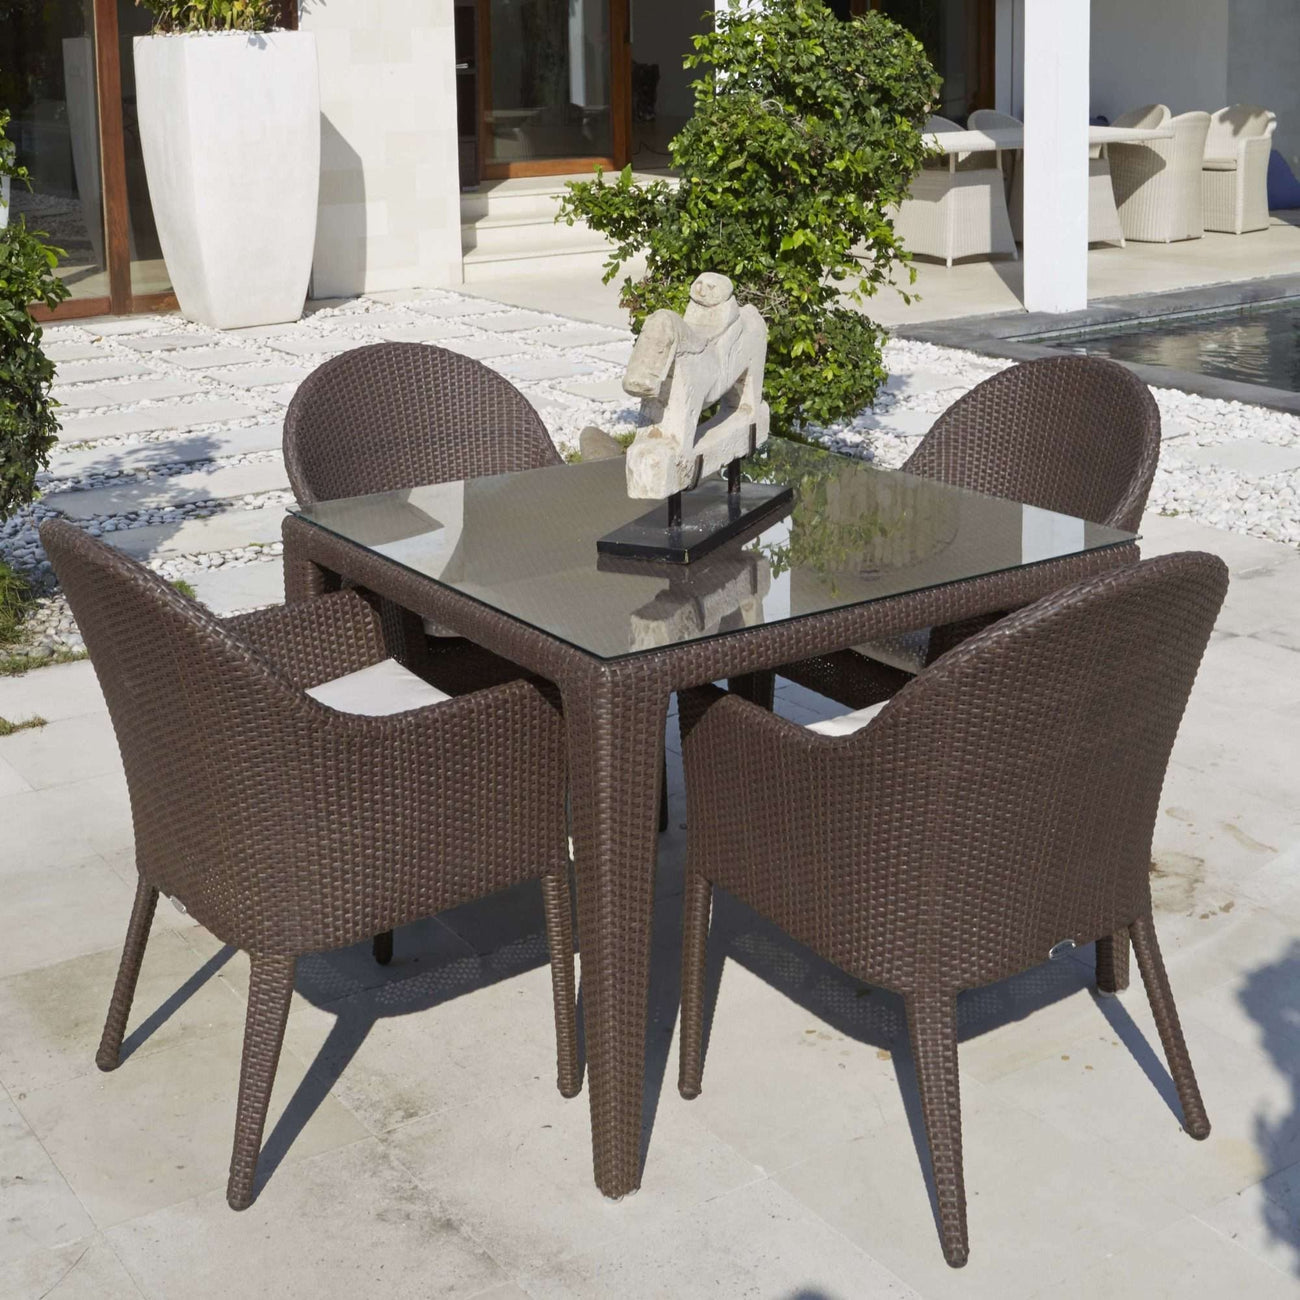 Malta Square Dining Table By Skyline Design